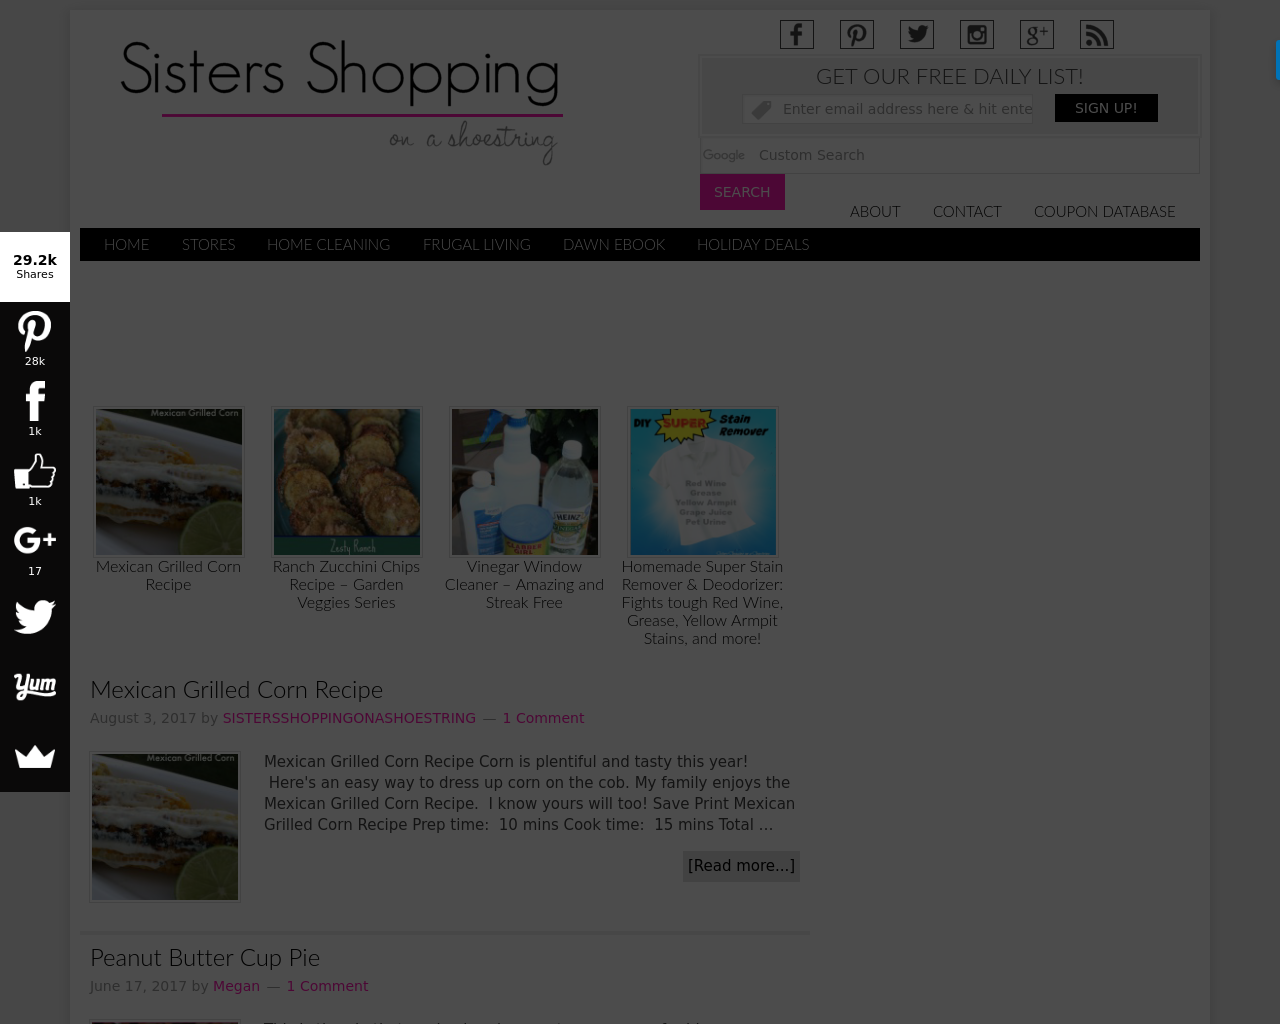 Sisters-Shopping-on-a-shoestring-Advertising-Reviews-Pricing